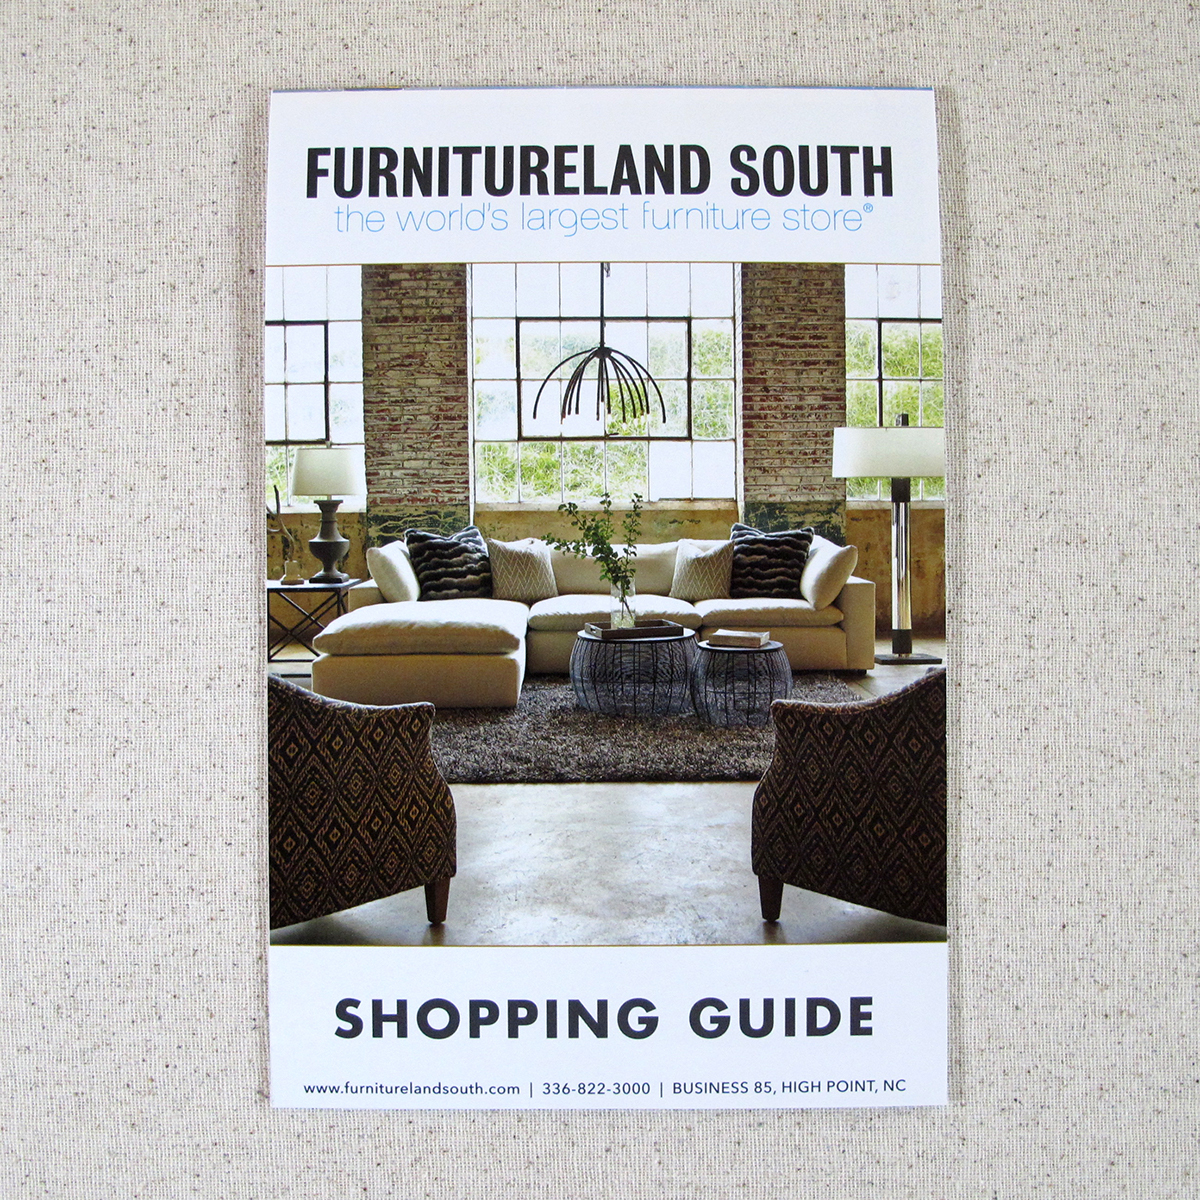 Furnitureland south shopping guide on aiga member gallery Furniture land south